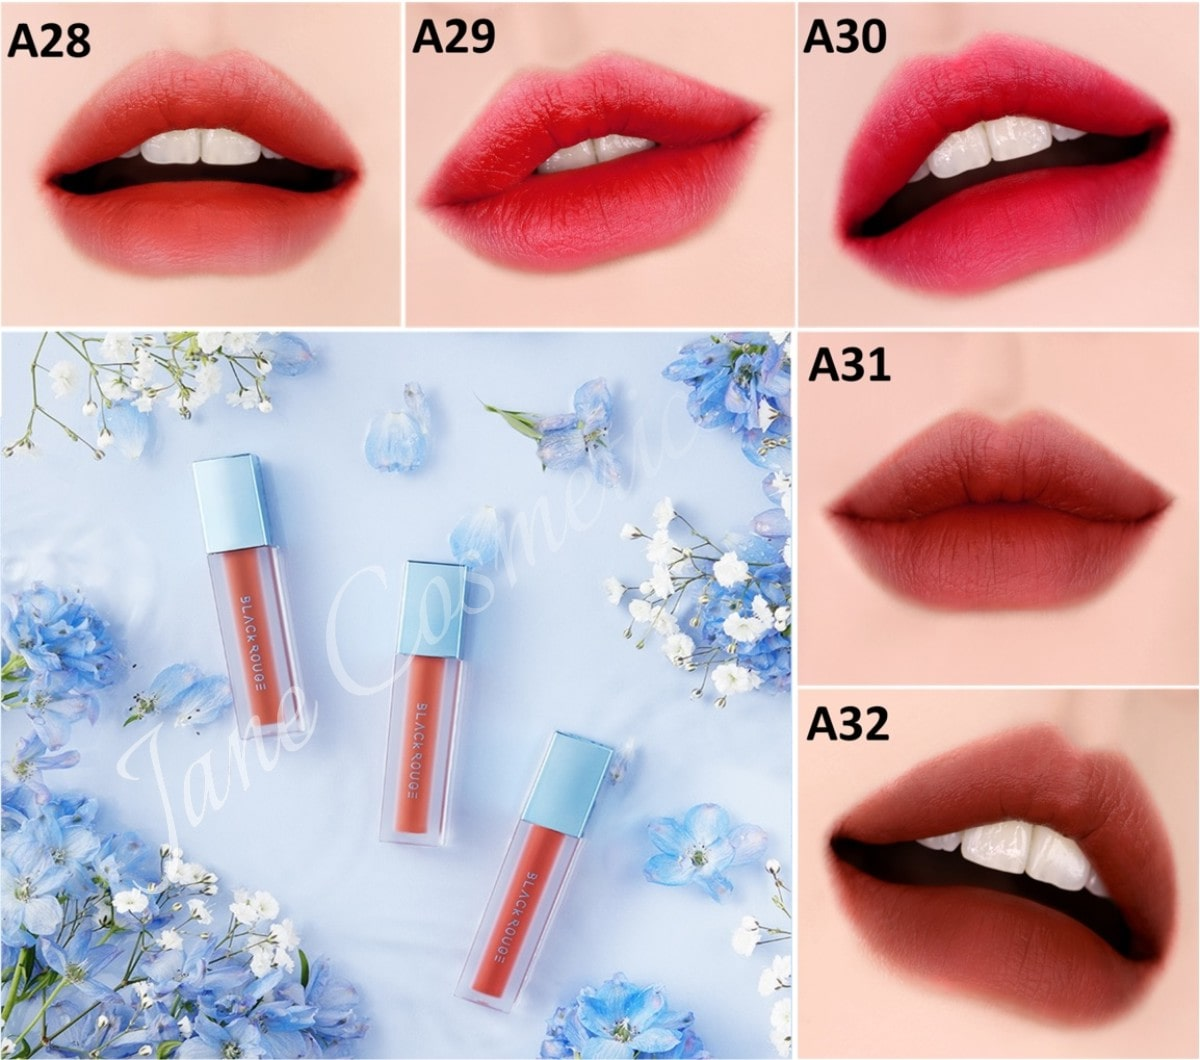 Black Rouge Air Fit Velvet Tint Ver 6 Blueming Garden